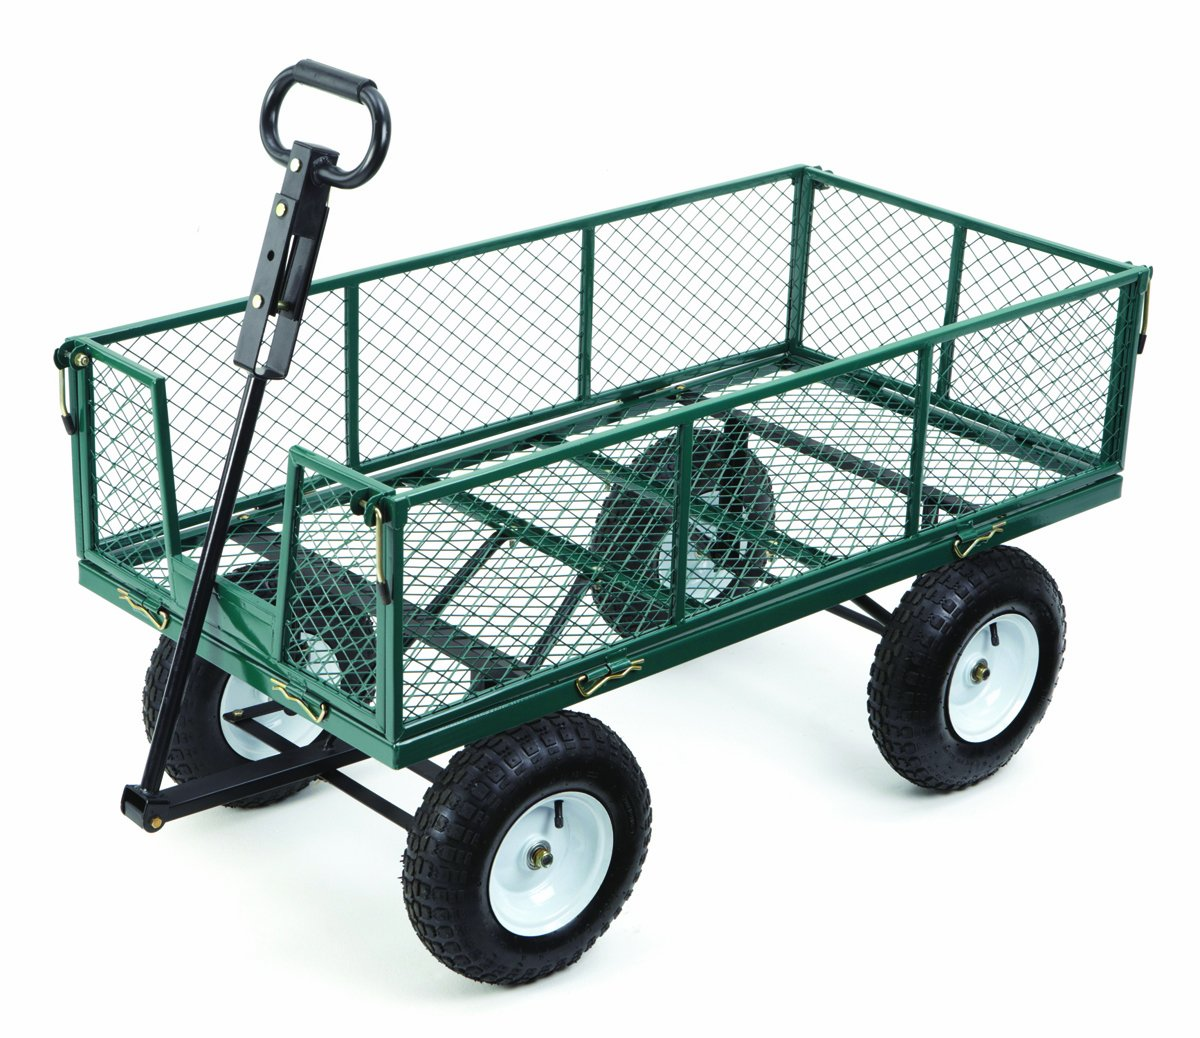 High Quality Amazon.com : Farm U0026 Ranch MH2121D Heavy Duty Steel Utility Cart With  Removable Folding Sides And 13 Inch Pneumatic Tires, 1, 000 Pound Capacity,  ...